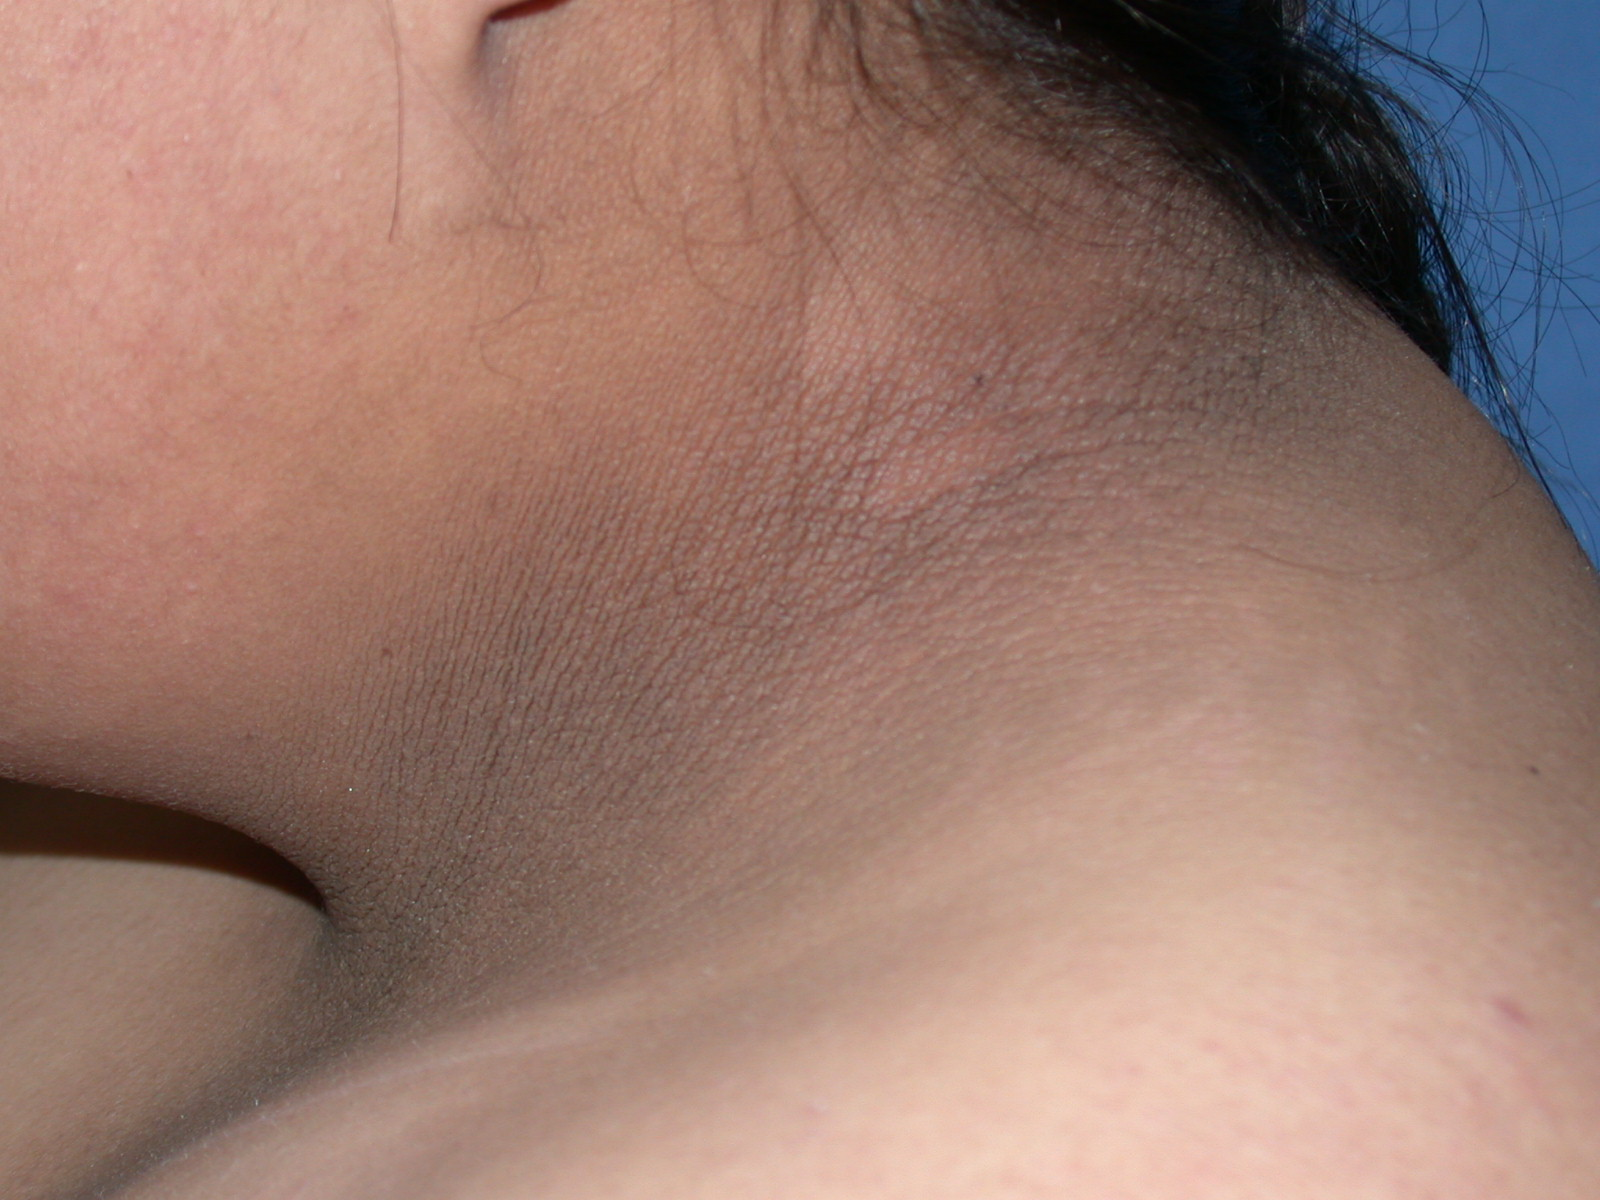 Image of a neck with acanthosis nigricans